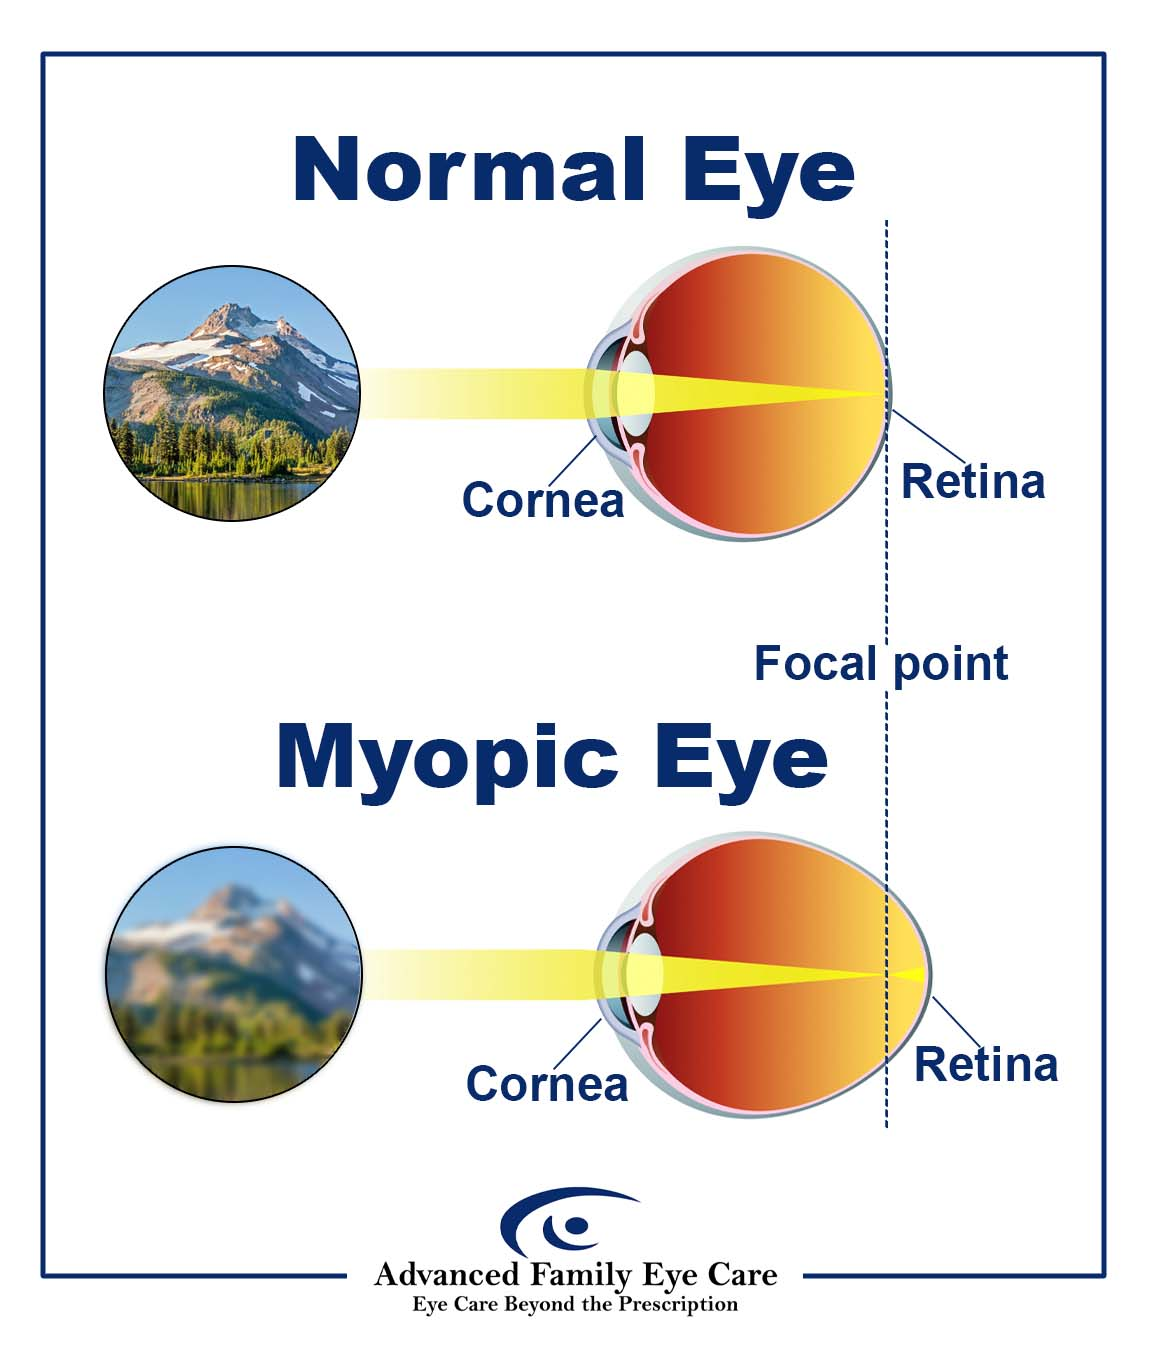 Infographic of two diagrams, the first one illustrating a normal eye and the second one illustrating an eye with myopia. The first diagram shows a normally shaped eye on the right side of the diagram. Light enters the eye and is refracted onto the retina. The left side of the diagram shows what this eye sees – a clear image of mountains. The second diagram shows an abnormally shaped myopic eye on the right side. Light enters the eye and is refracted in front of the retina. The left side of diagram 2 shows what this eye sees – a blurry image of mountains.